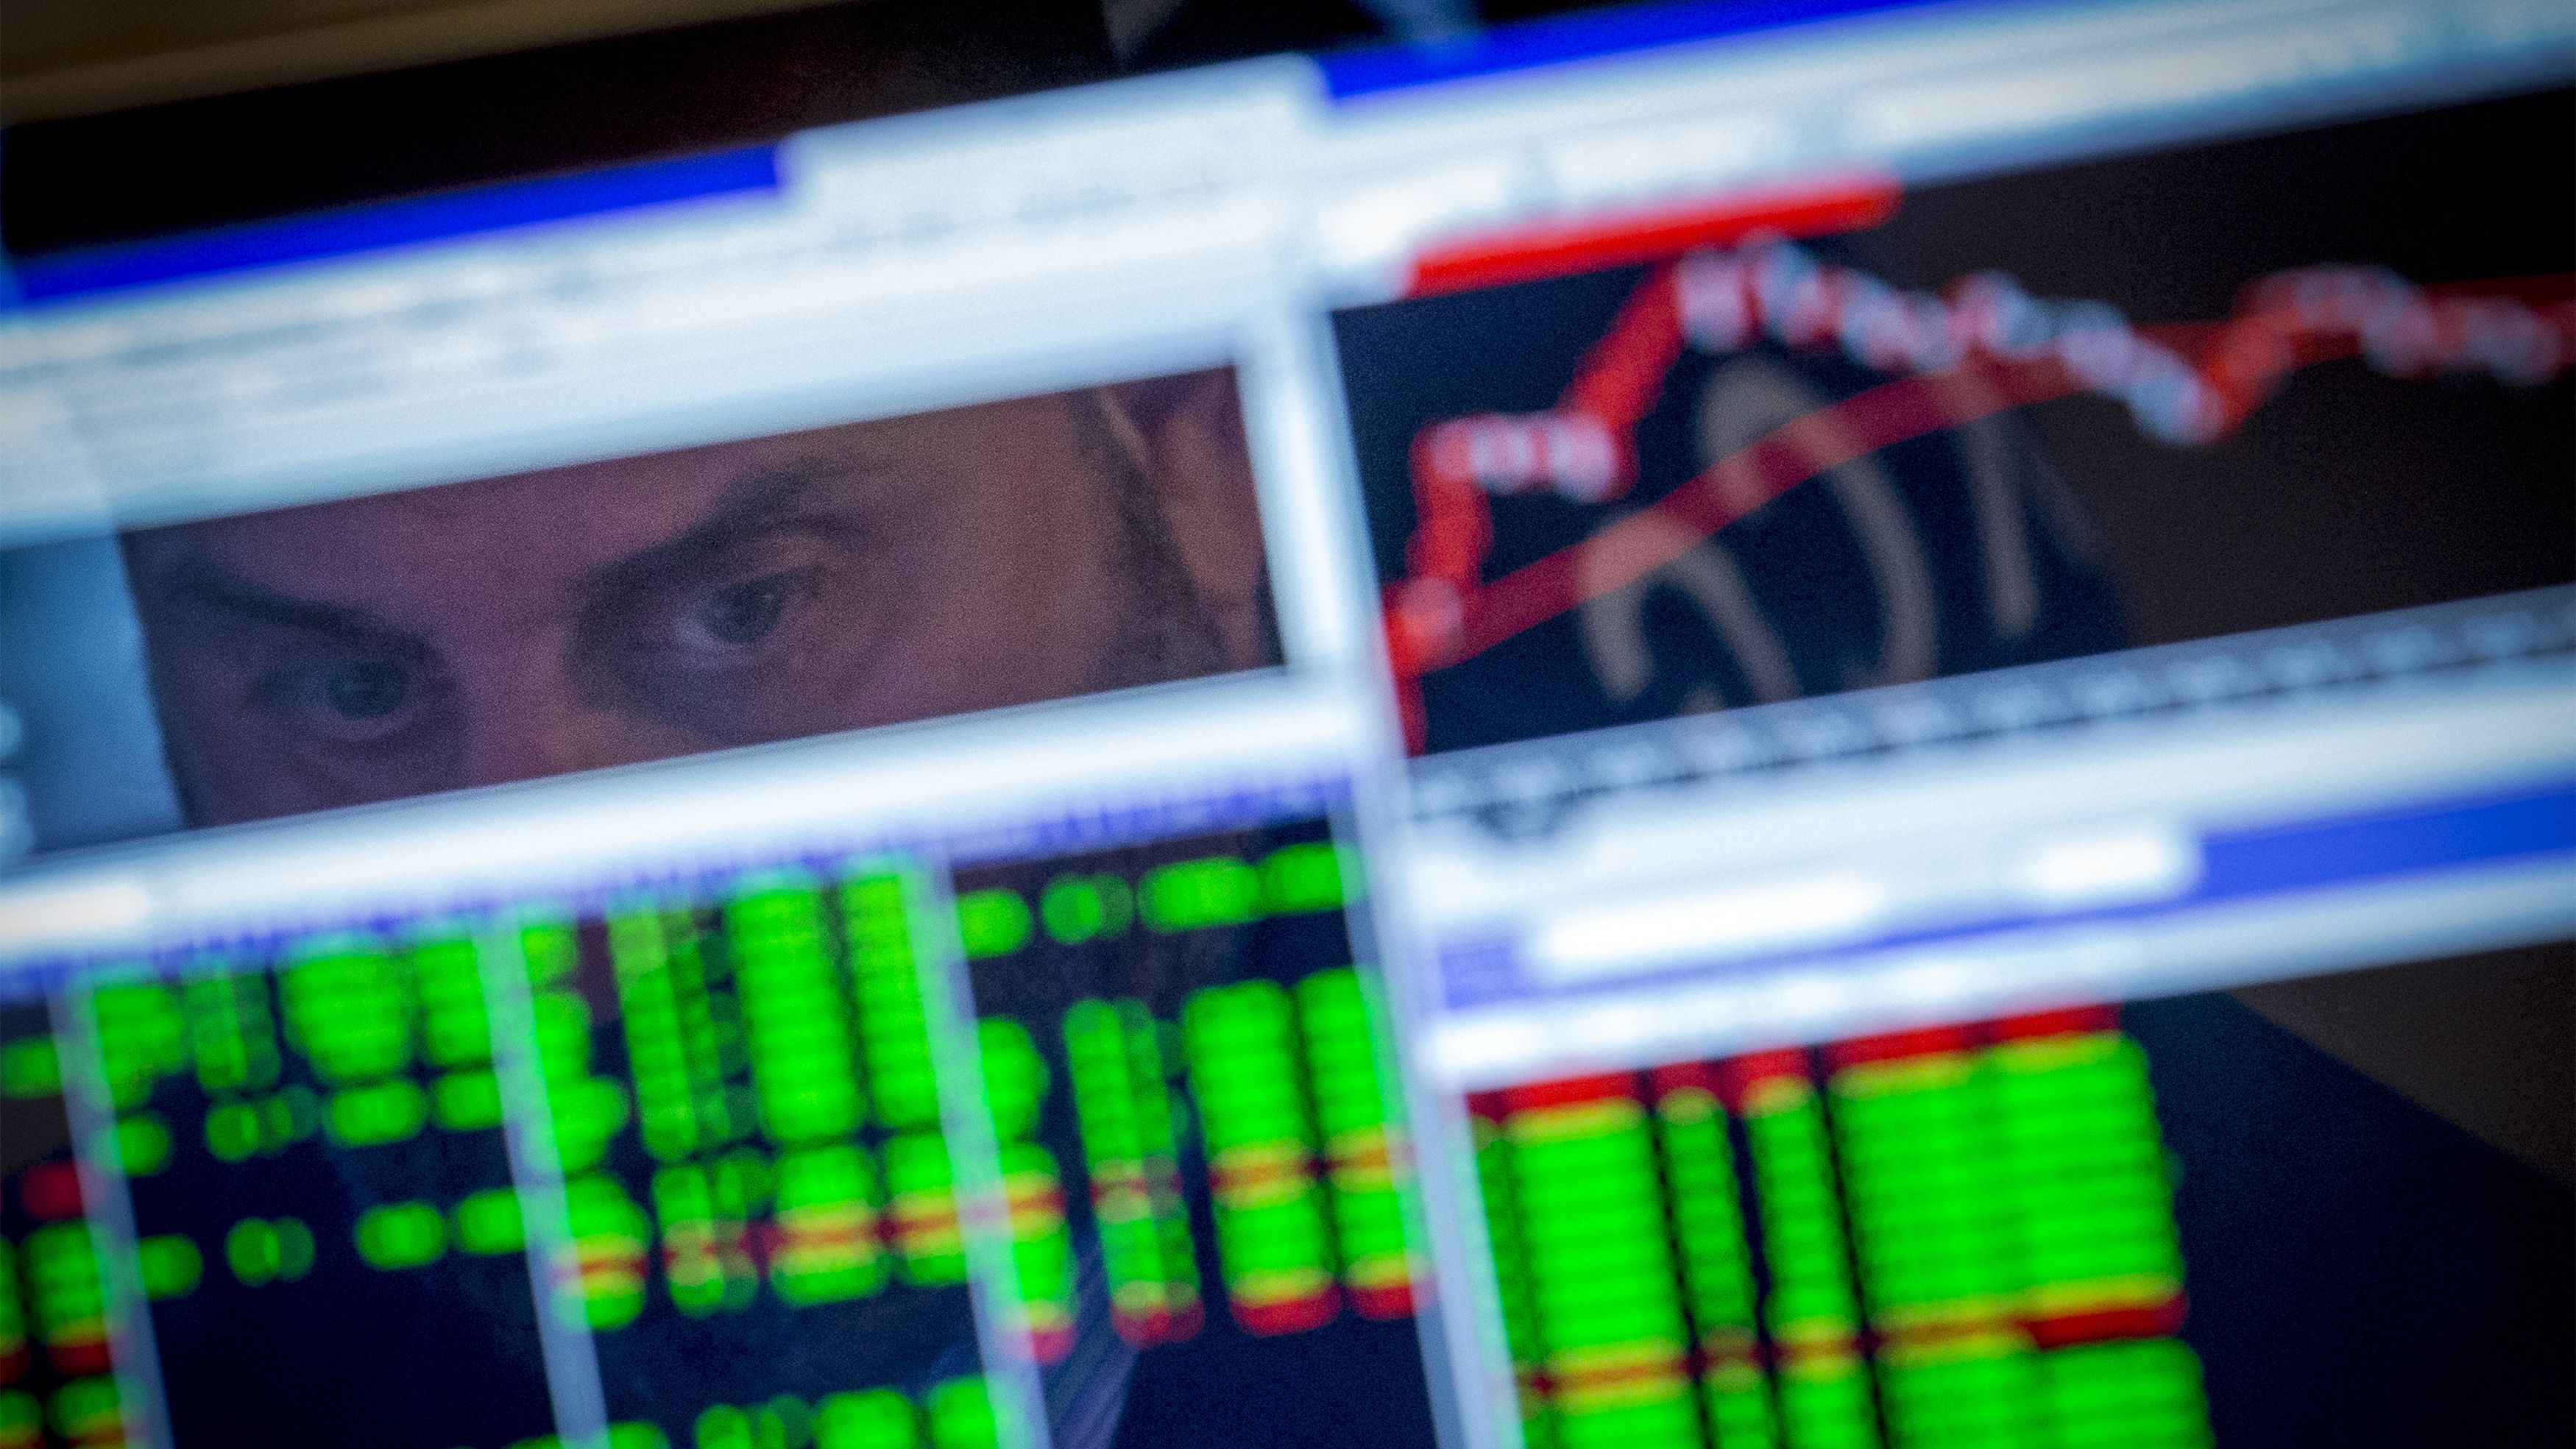 A specialist trader watches his screen on the floor of the New York Stock Exchange August 25, 2014. REUTERS/Brendan McDermid (UNITED STATES - Tags: BUSINESS)